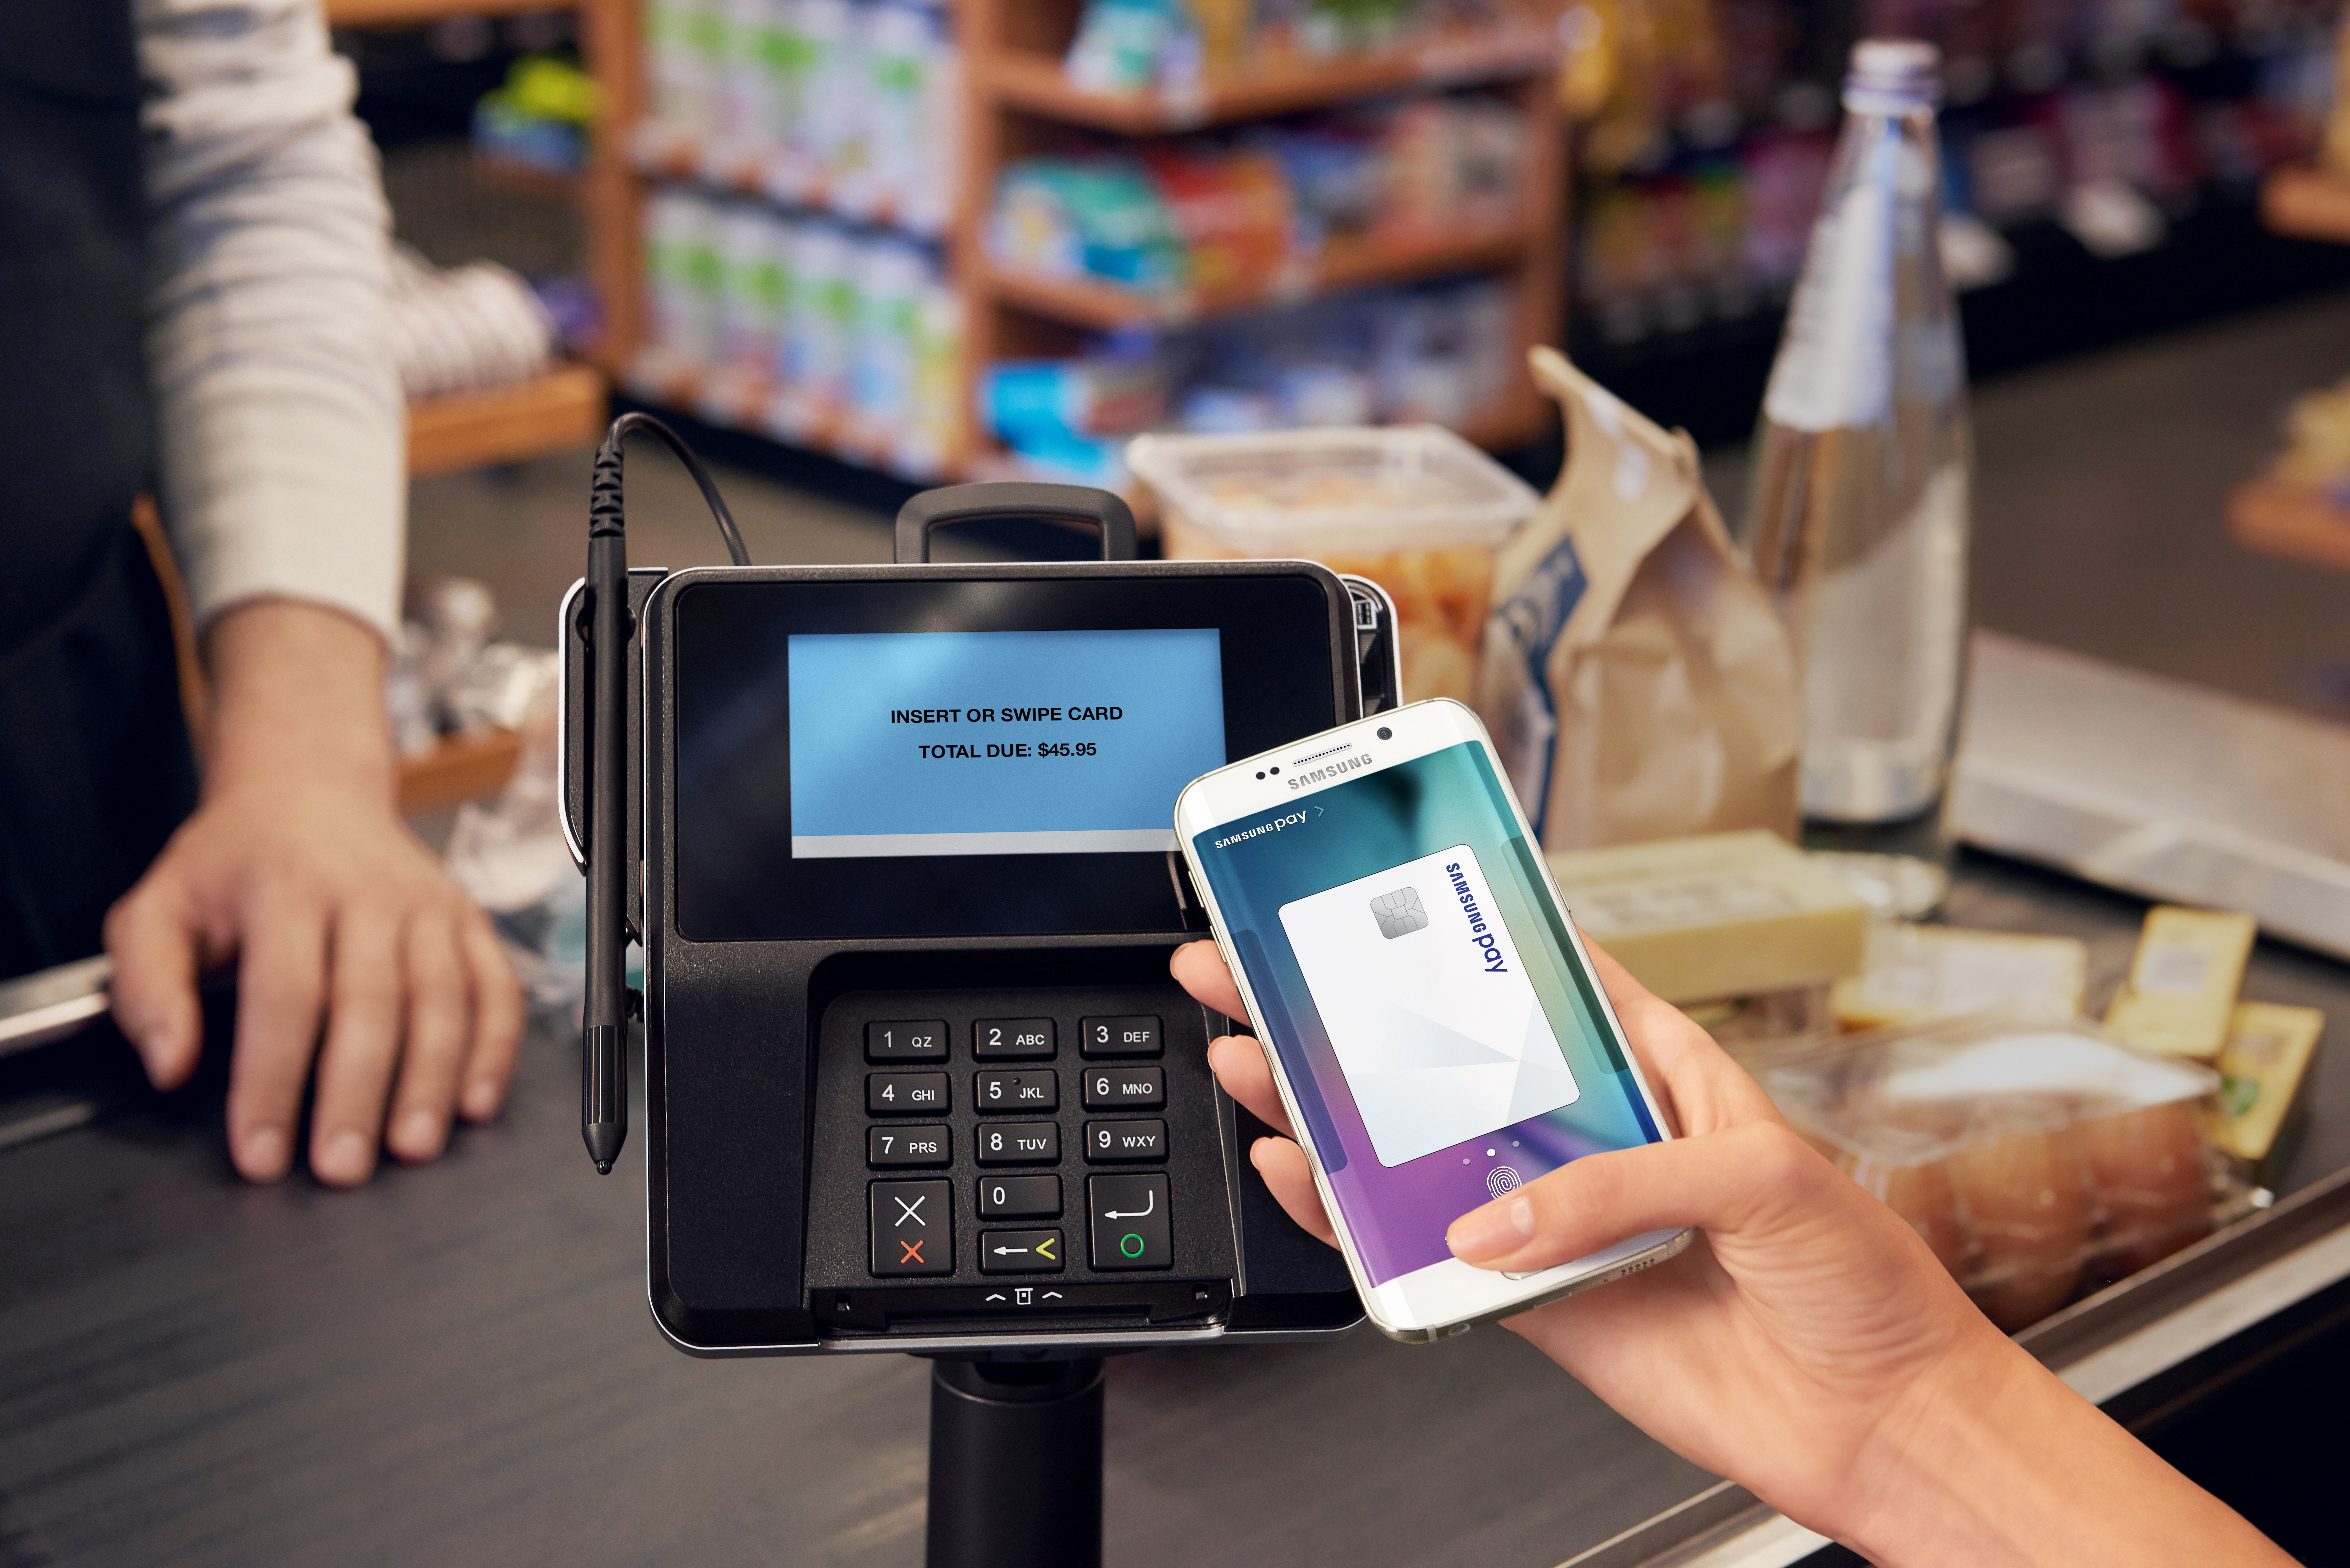 Samsung Pay Adds 19 New MasterCard and Visa Issuers, Including PNC